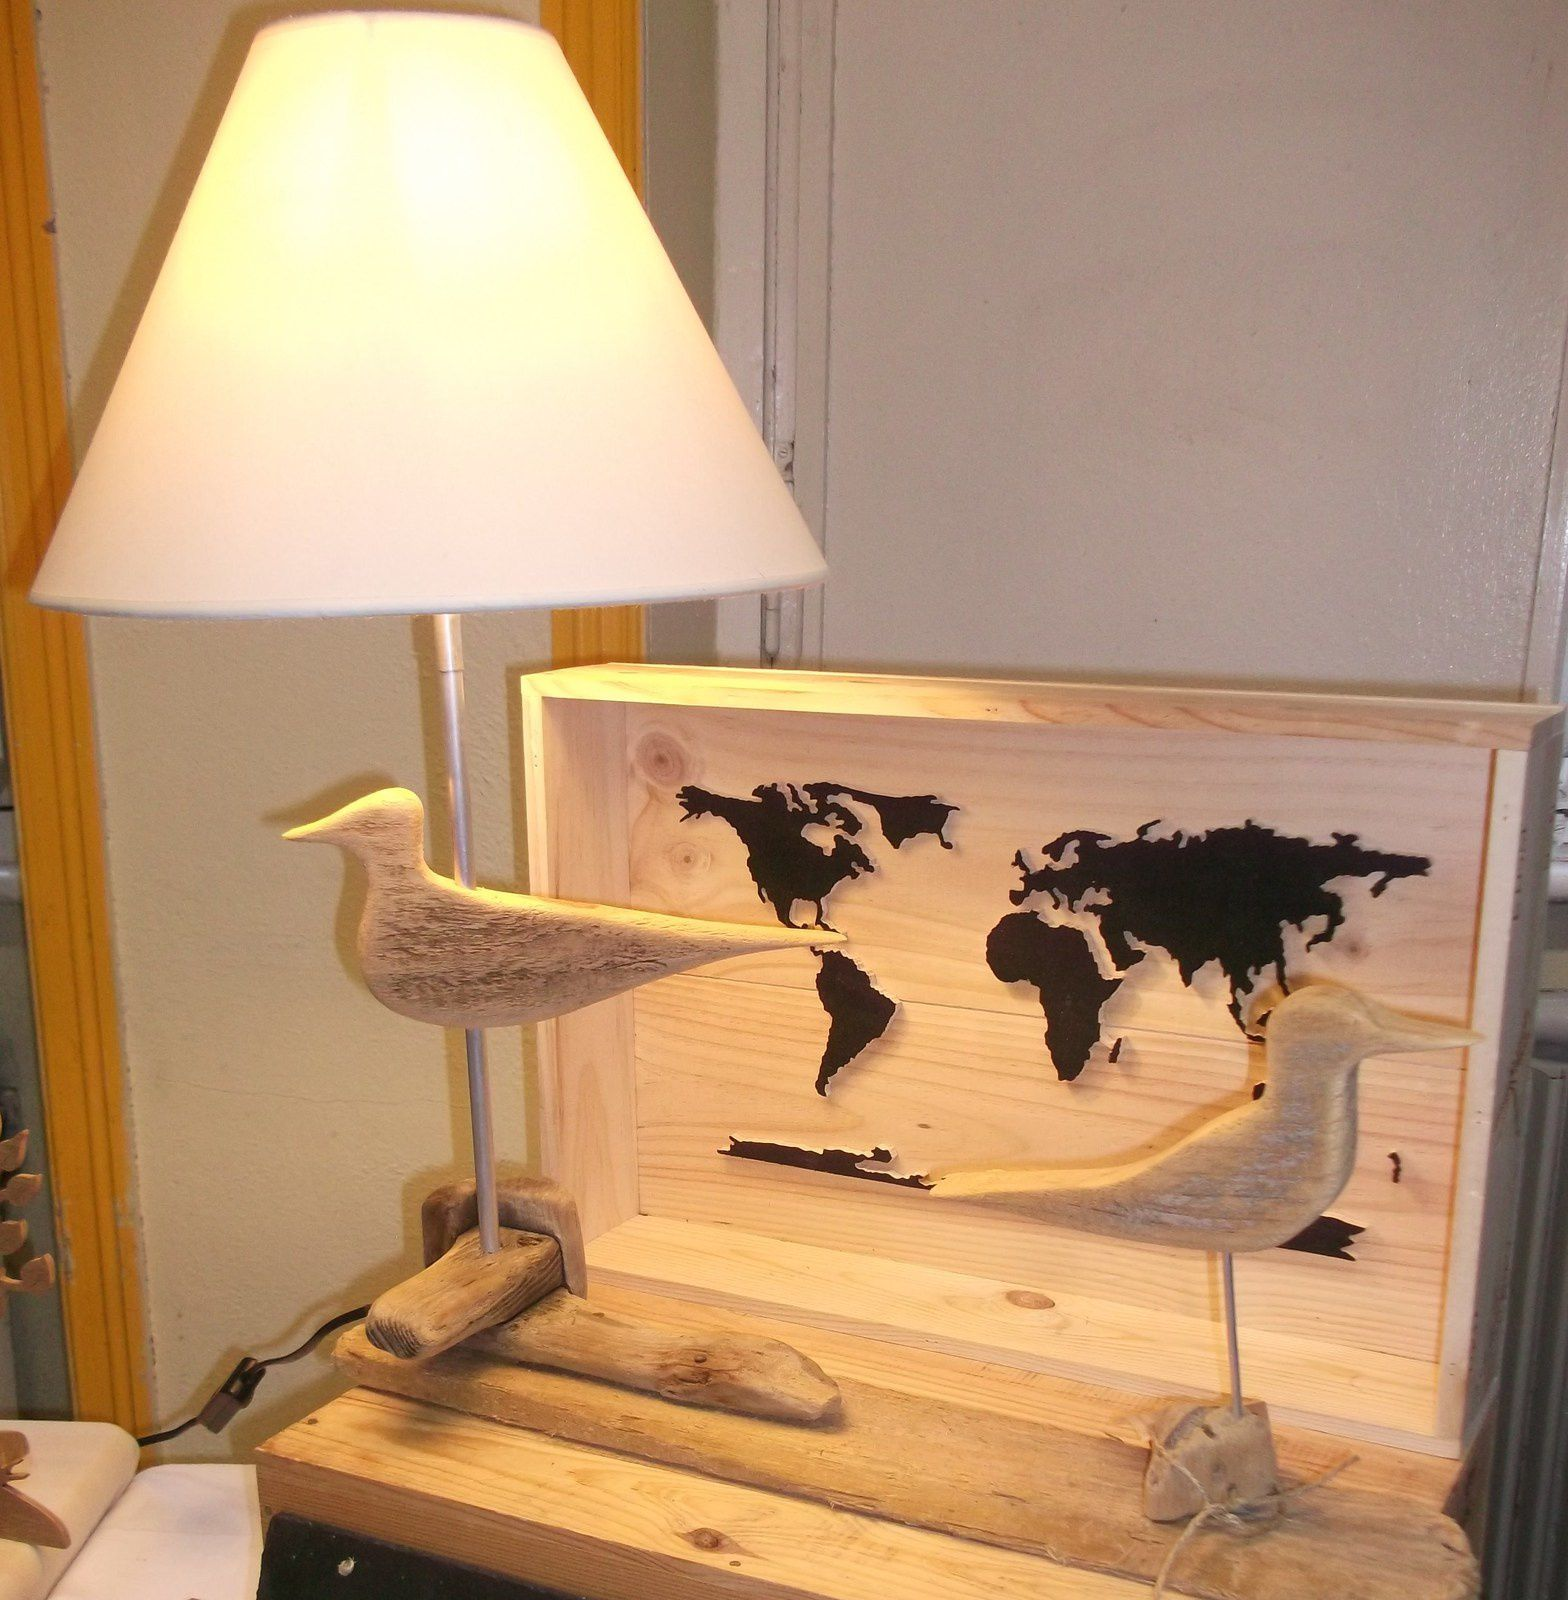 luminaires concarneau d co recycl e. Black Bedroom Furniture Sets. Home Design Ideas